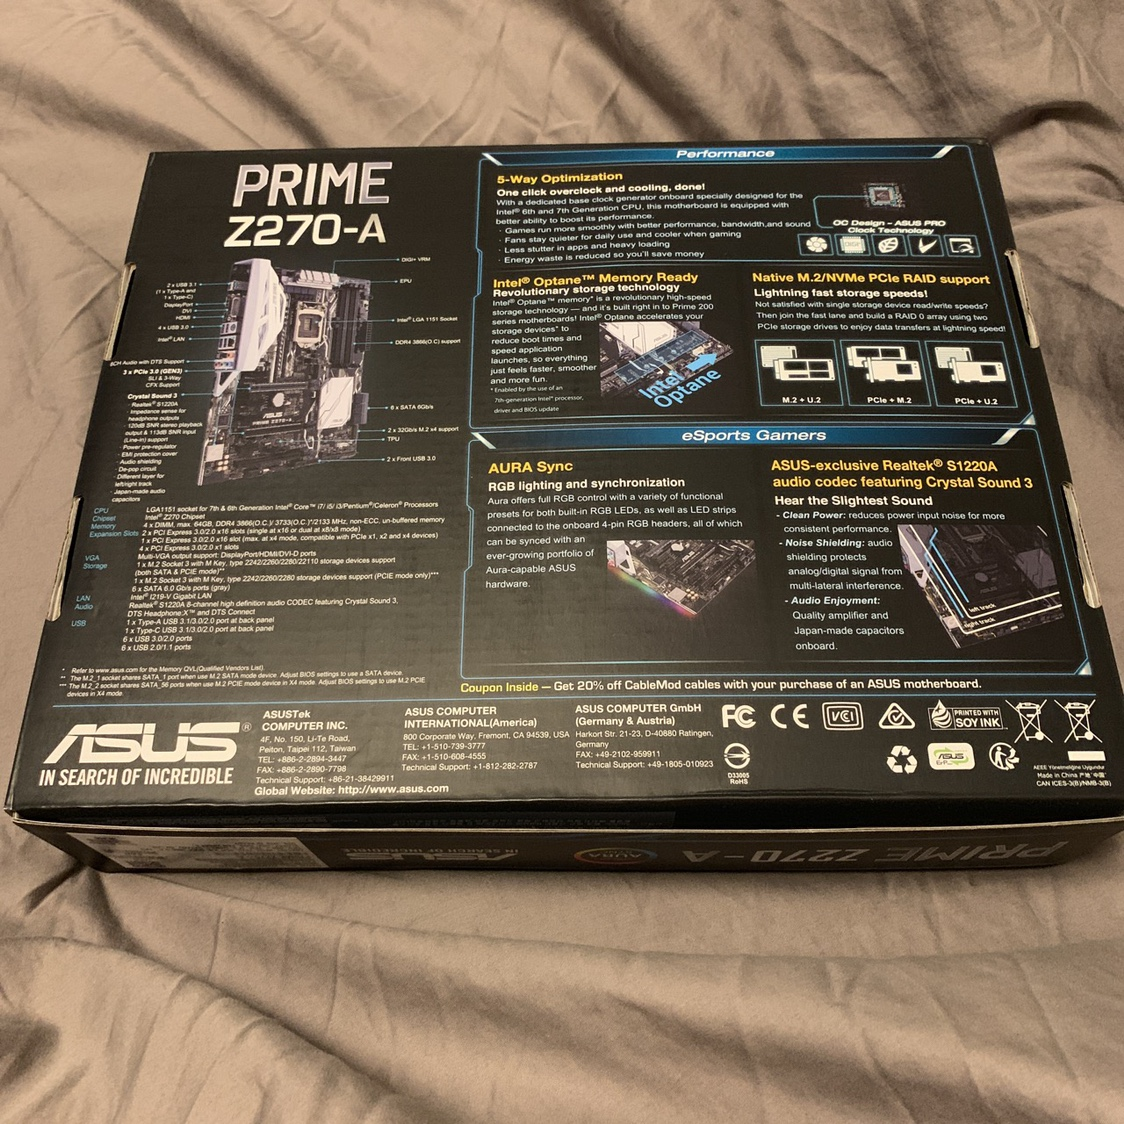 asus prime Z270-A motherboard for sale, brand new in    - Depop